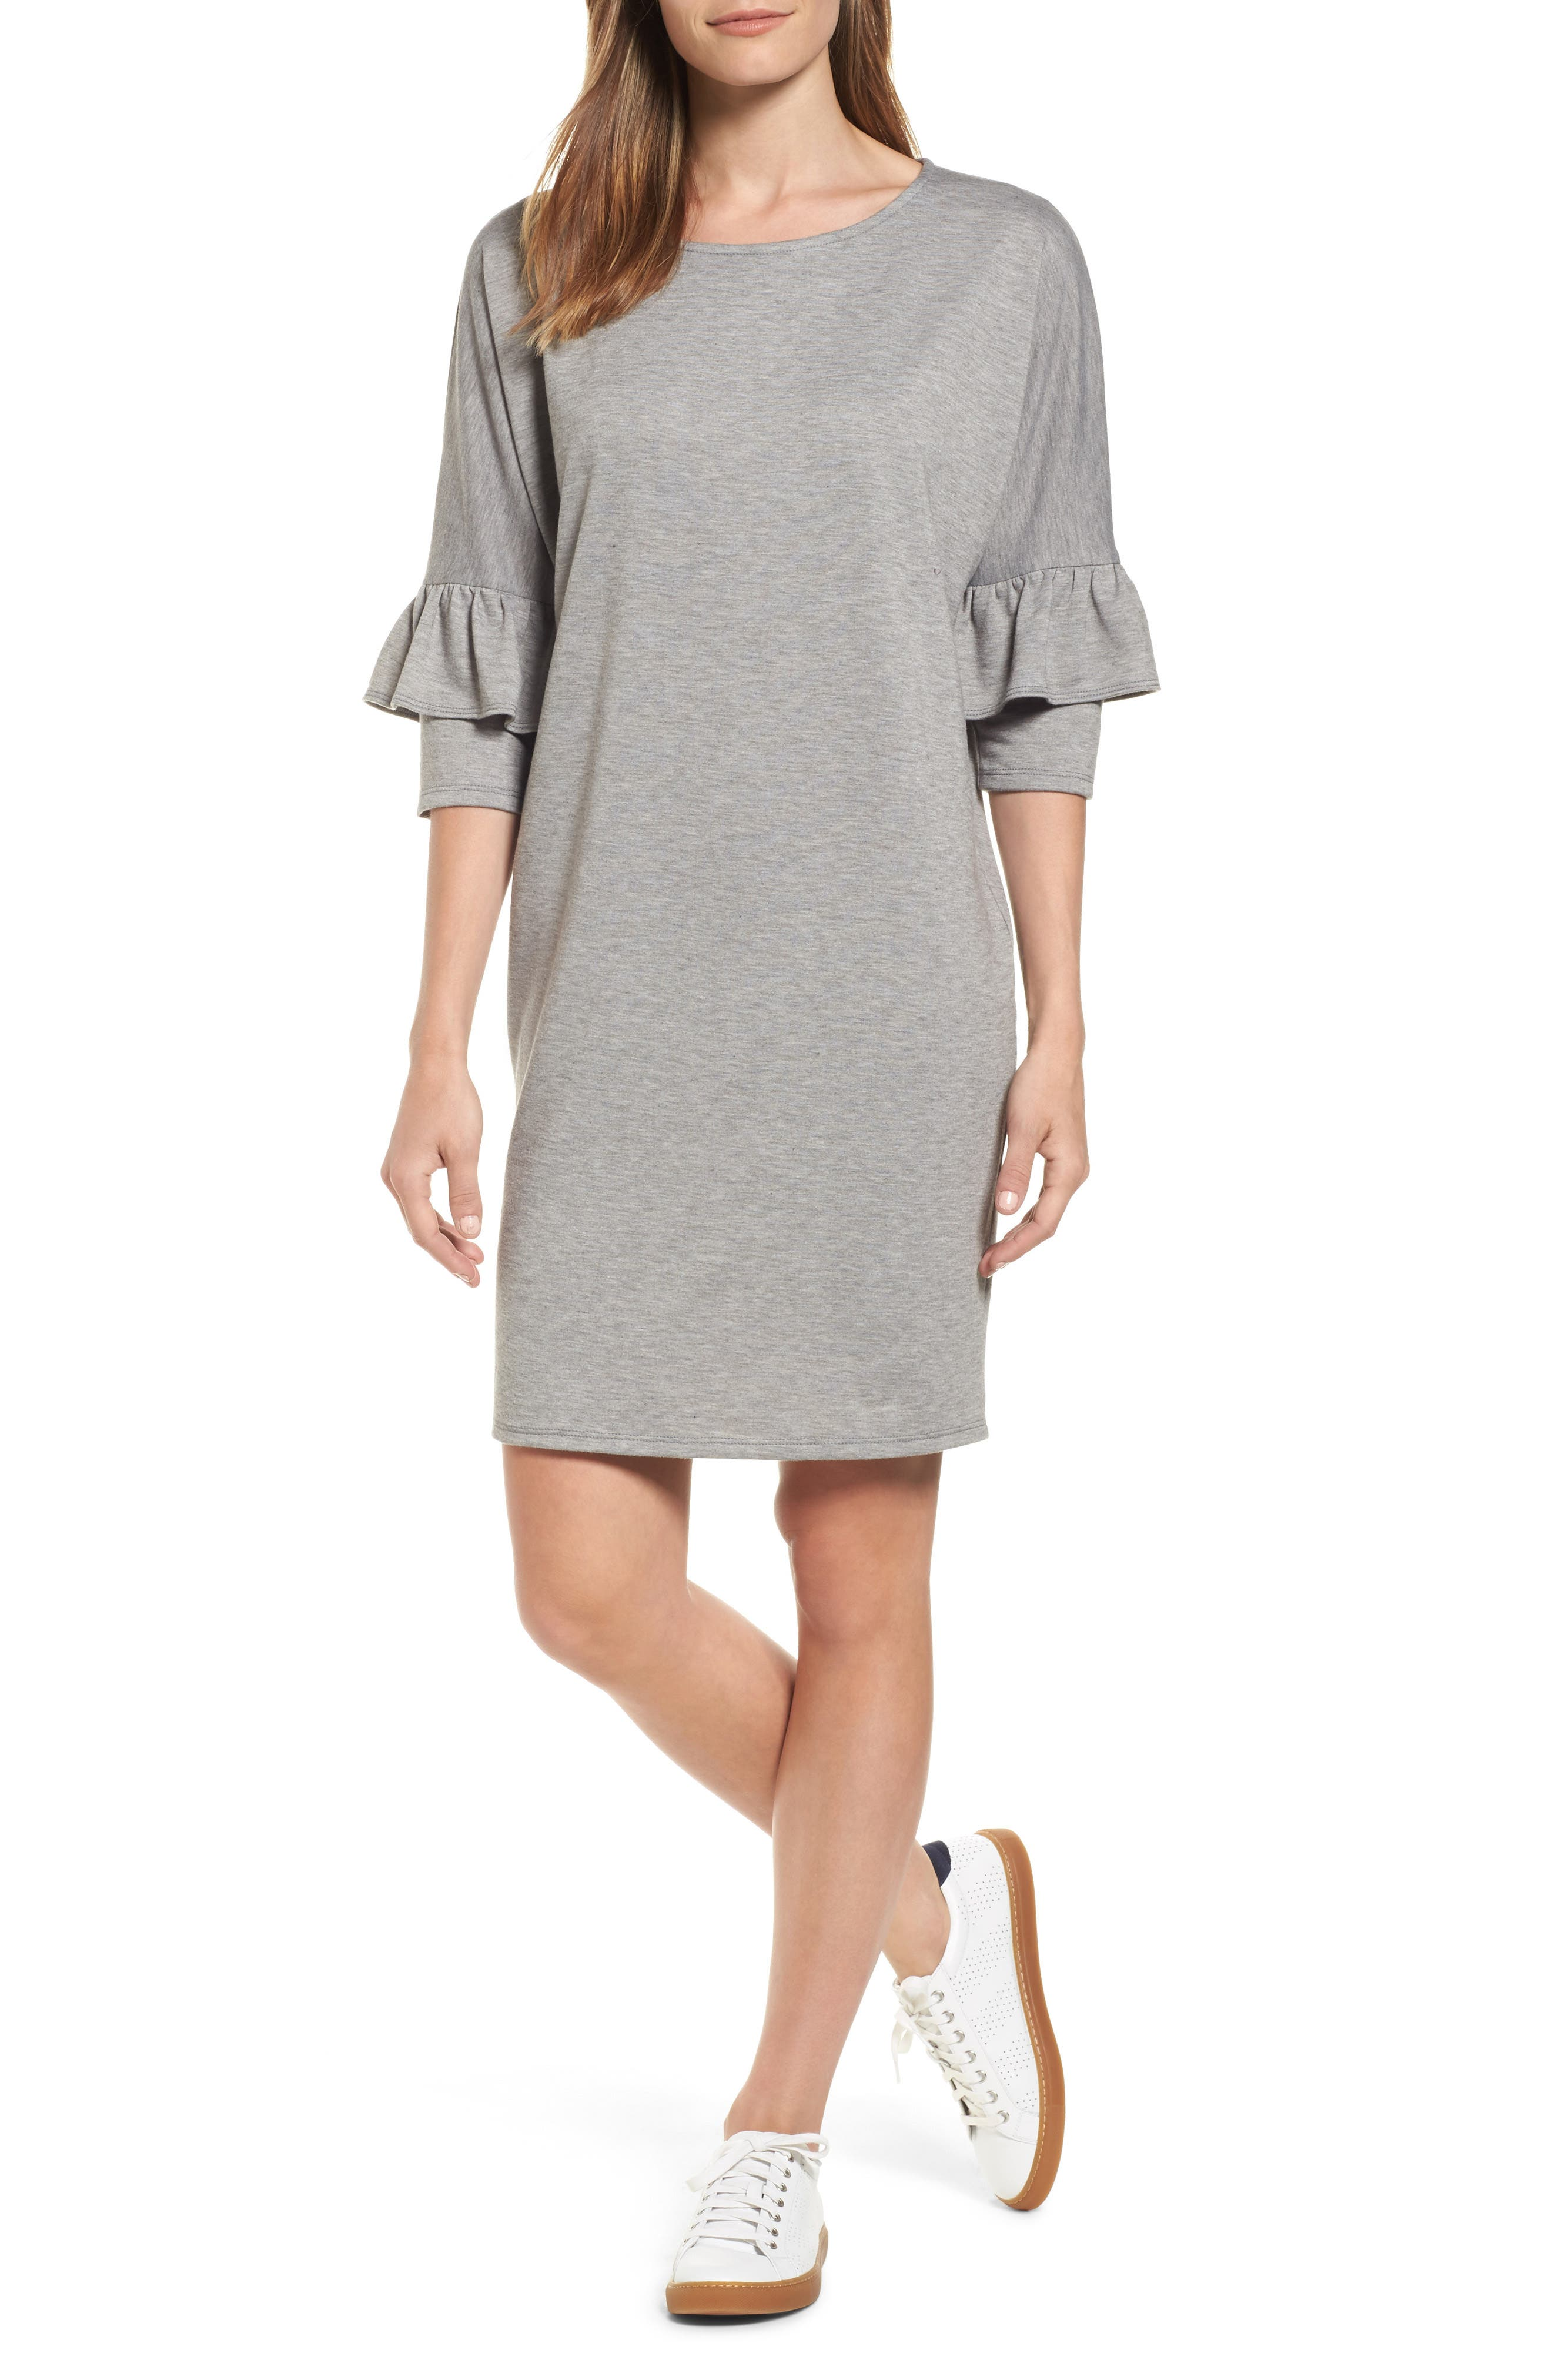 Bobeau Ruffle Sleeve Tunic Dress (Regular & Petite)